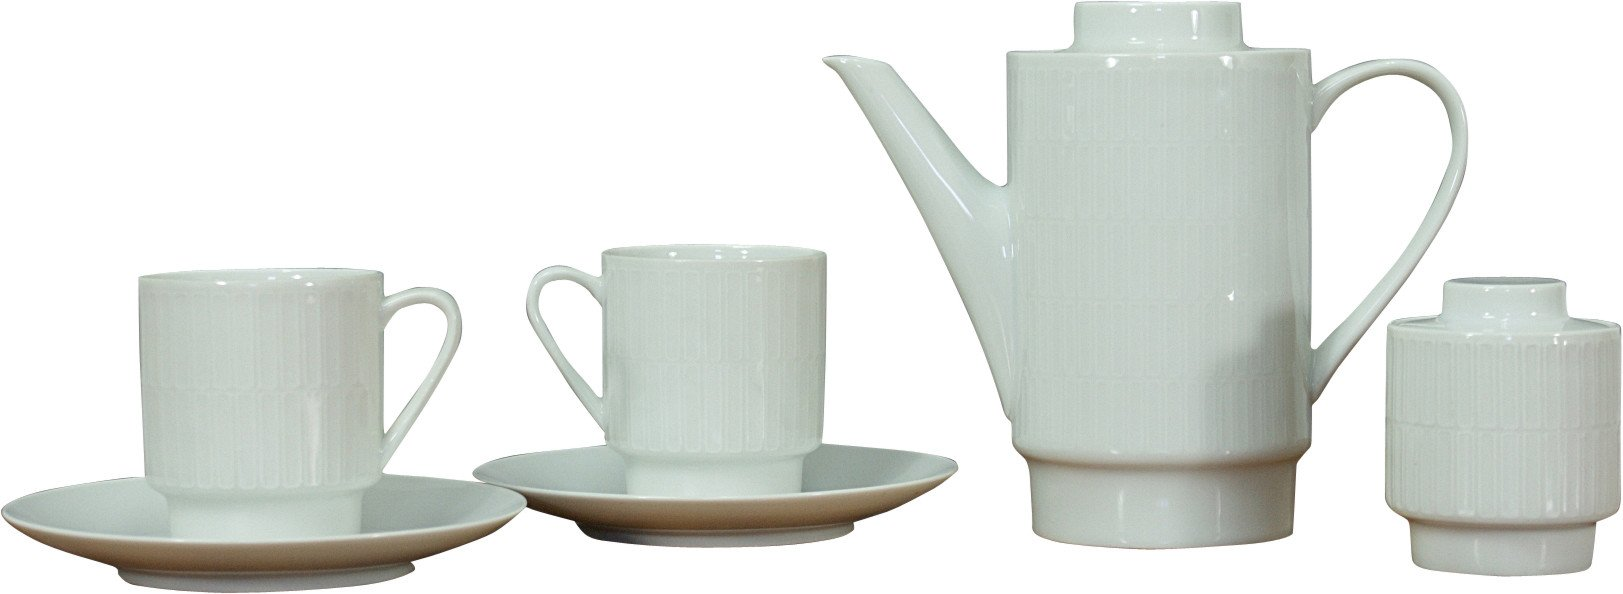 Porcelain Service by L. Kantner for Melitta, Germany, 1960s